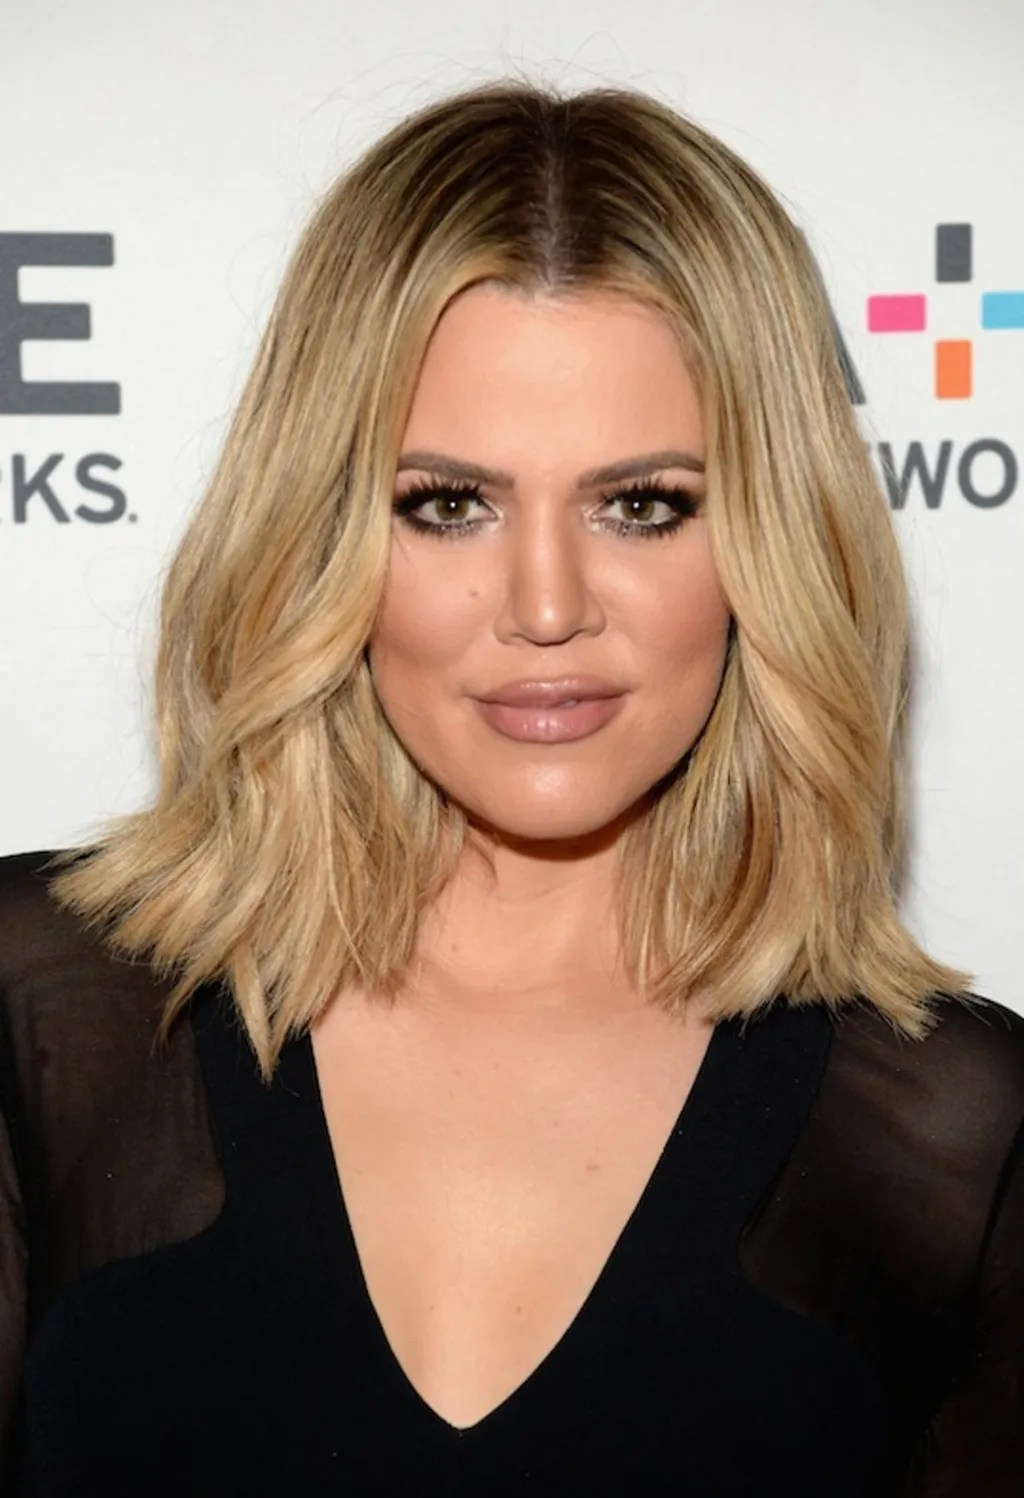 Kardashian Brunette Hair Khloe Kardashian 39;s Short Hair Is The Most Versatile Cut